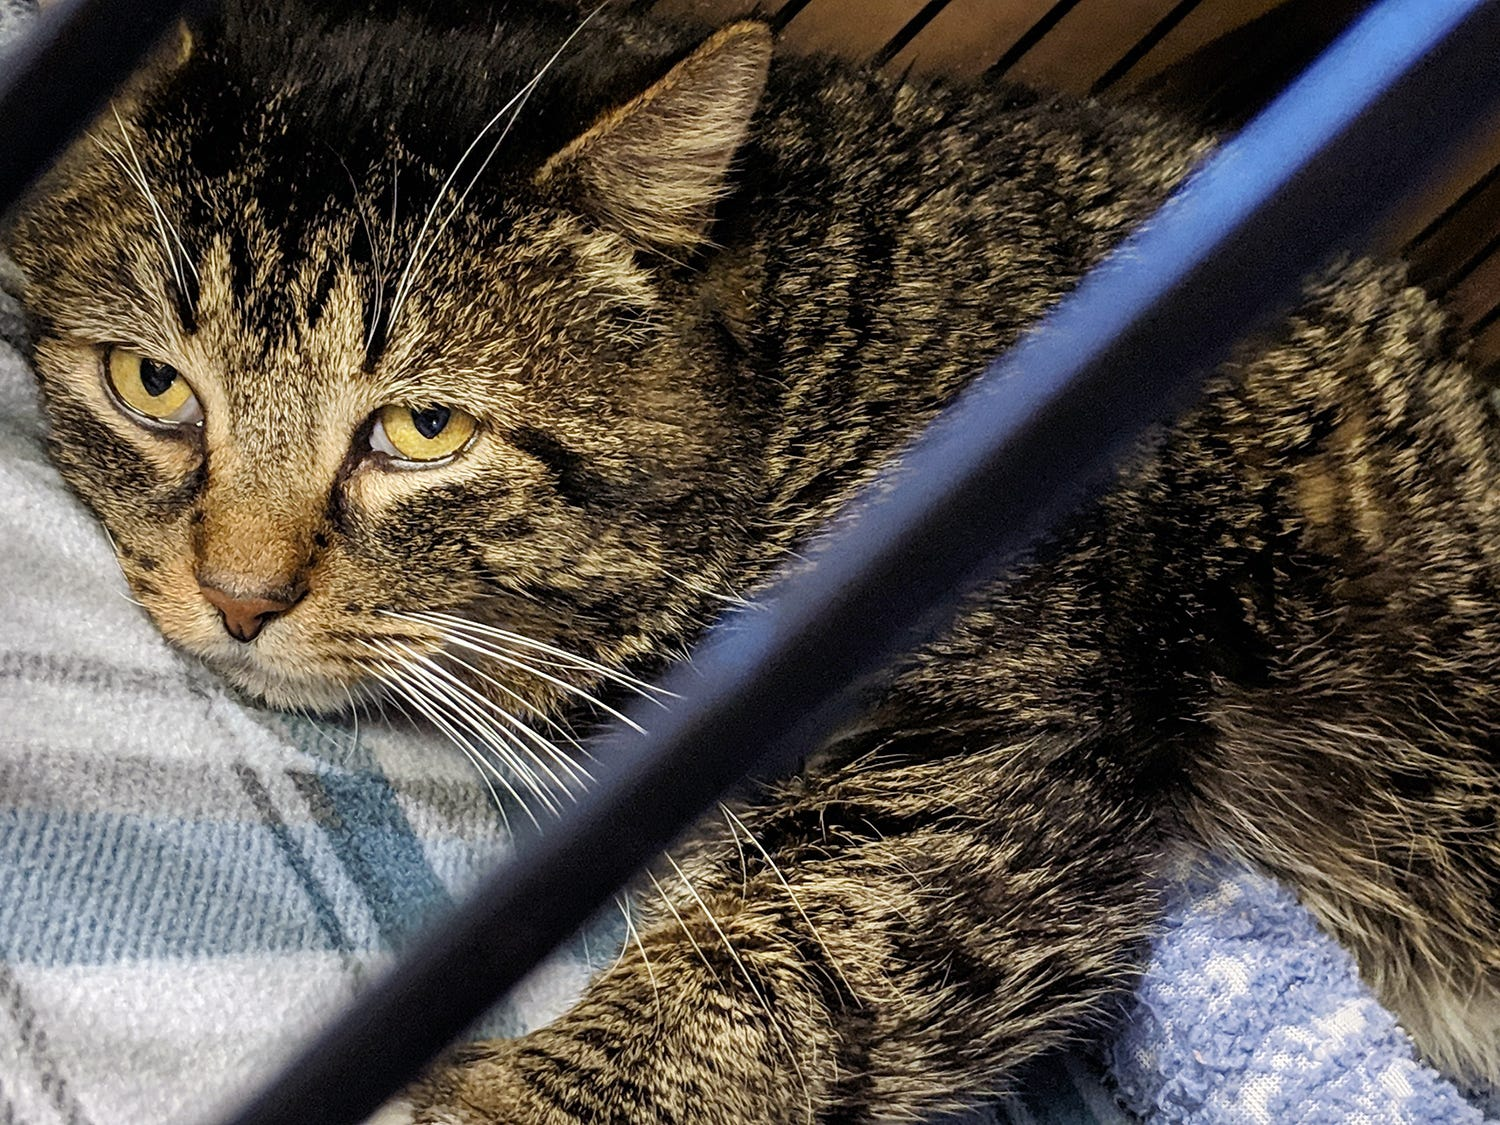 Hunter is a 3-year-old brown tabby who was found on Hunter Creek Drive in Conewago Township. He is a very sweet and affectionate boy and is available for adoption at the York County SPCA Tuesday February 26, 2019.